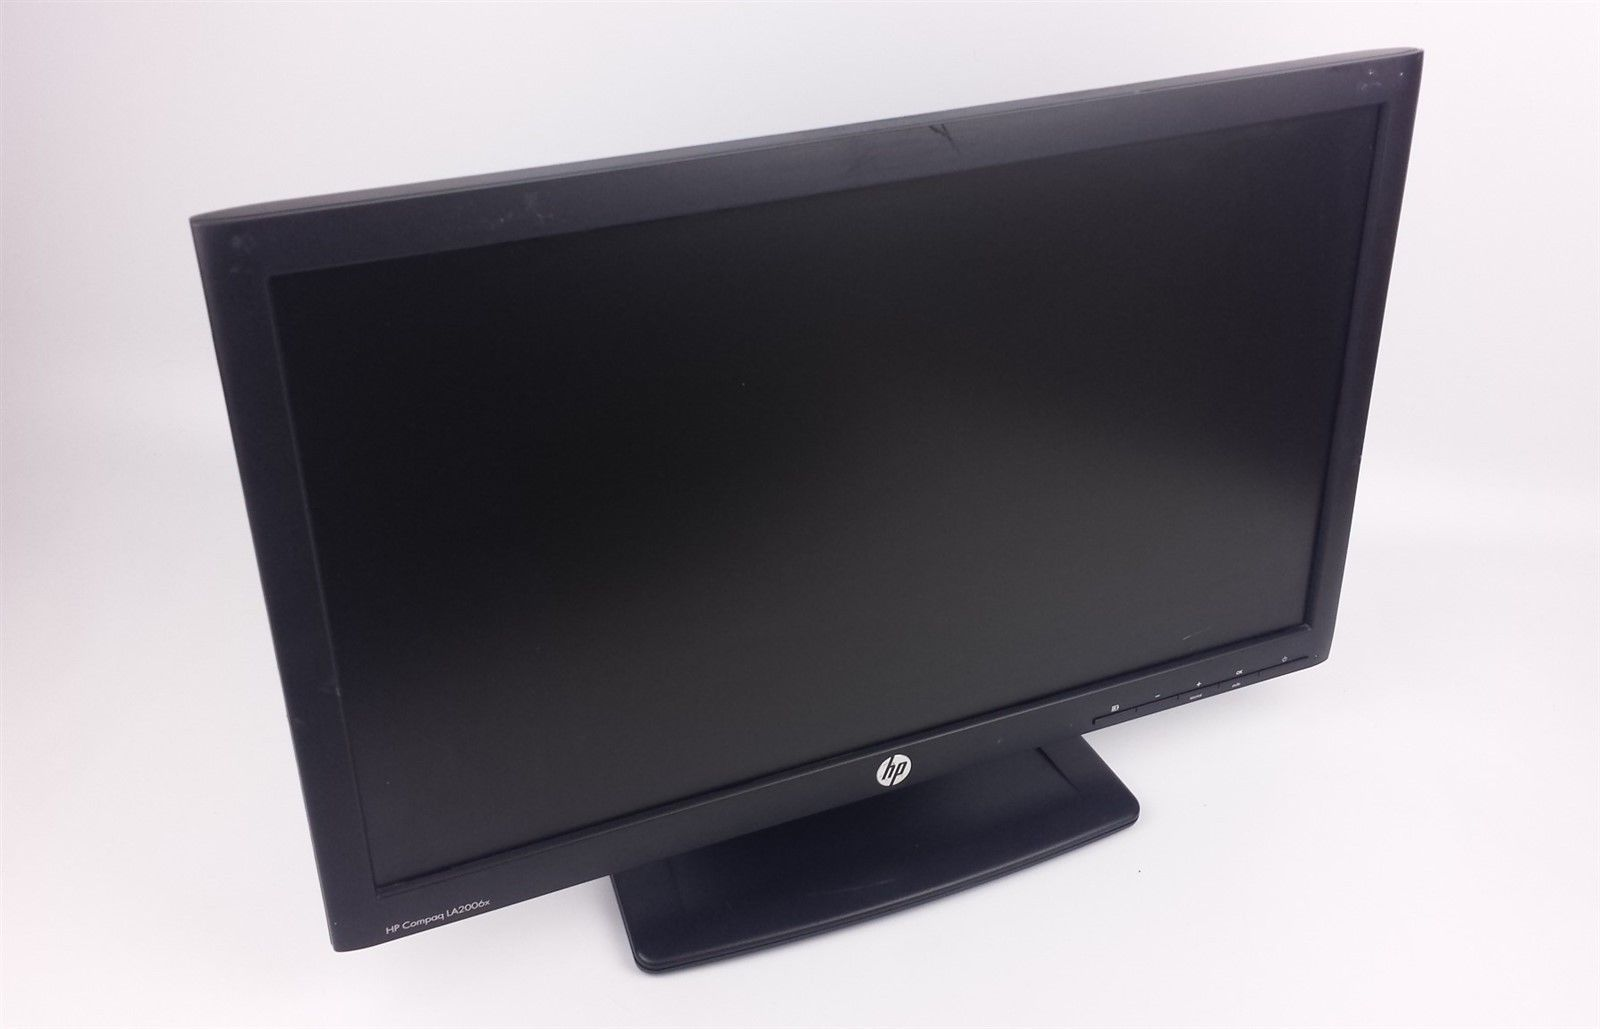 "HP Compaq LA2006x HD LCD Computer Monitor 20"" XN374A w/ Power and VGA Cord"